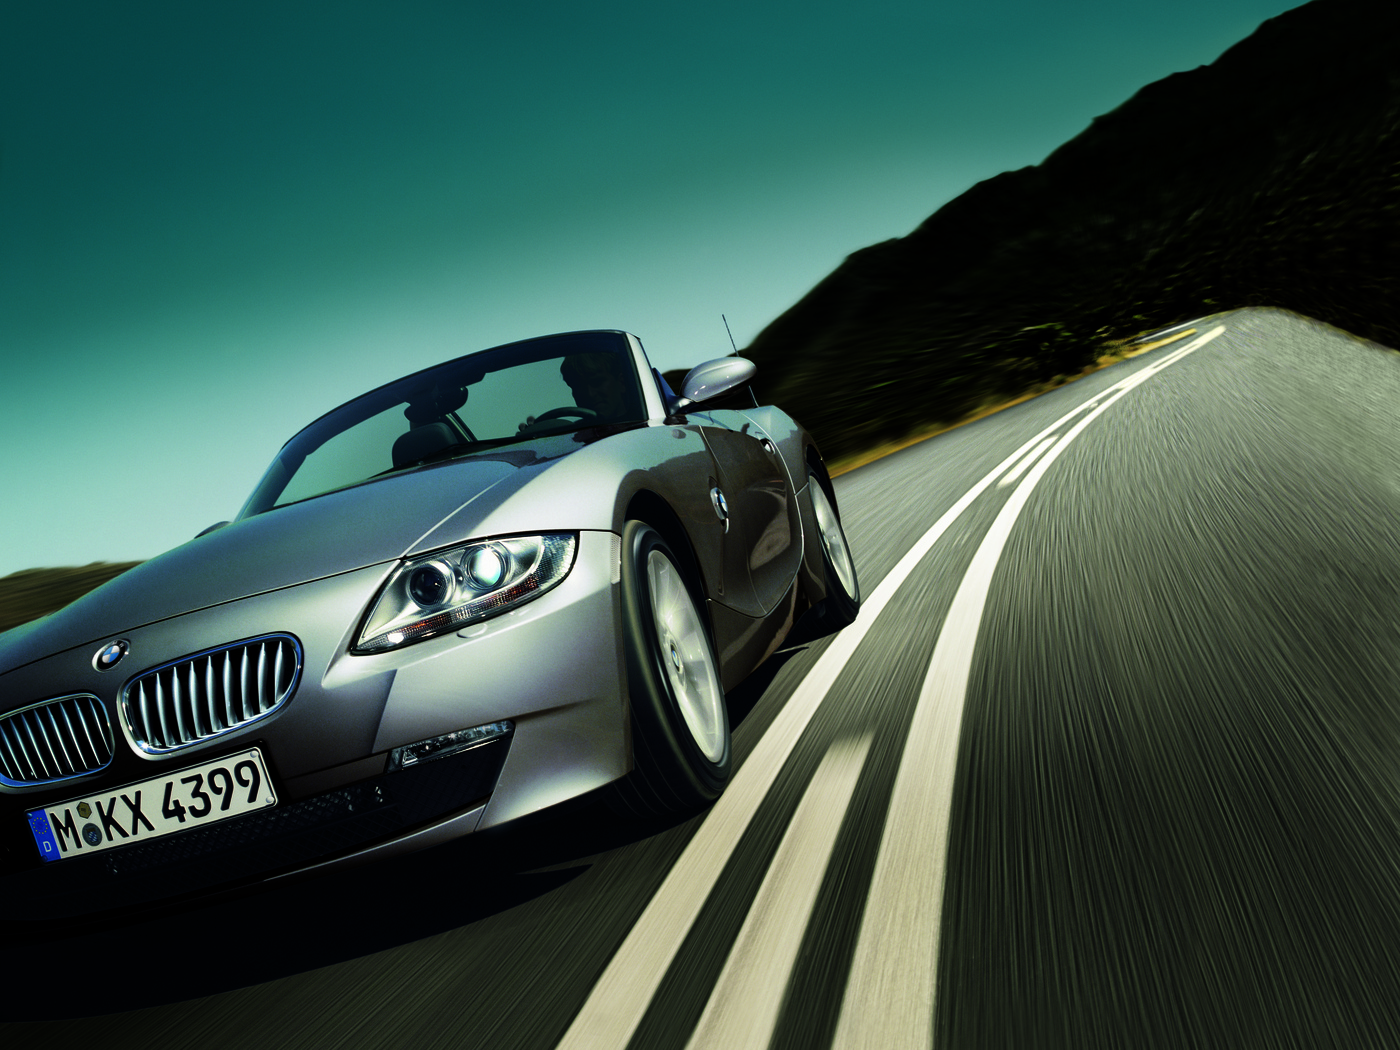 photographer, john rankin waddell, z4, bmw, скорость, трасса